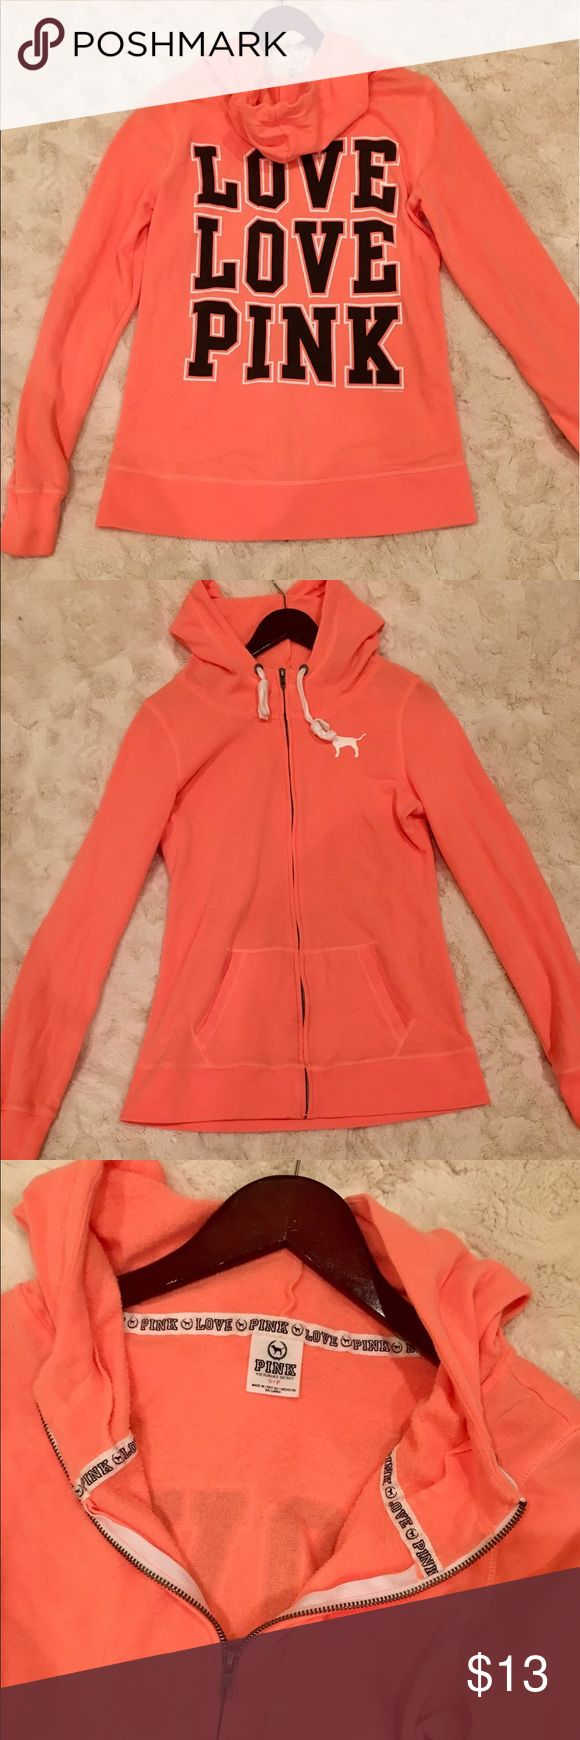 Victoria's Secret PINK peach colored hoodie Victoria's Secret PINK peach colored zip up hoodie in great condition with no stains or wears. In size small/petite.  Price is negotiable. Will send additional pictures if asked 😊 PINK Victoria's Secret Jackets & Coats